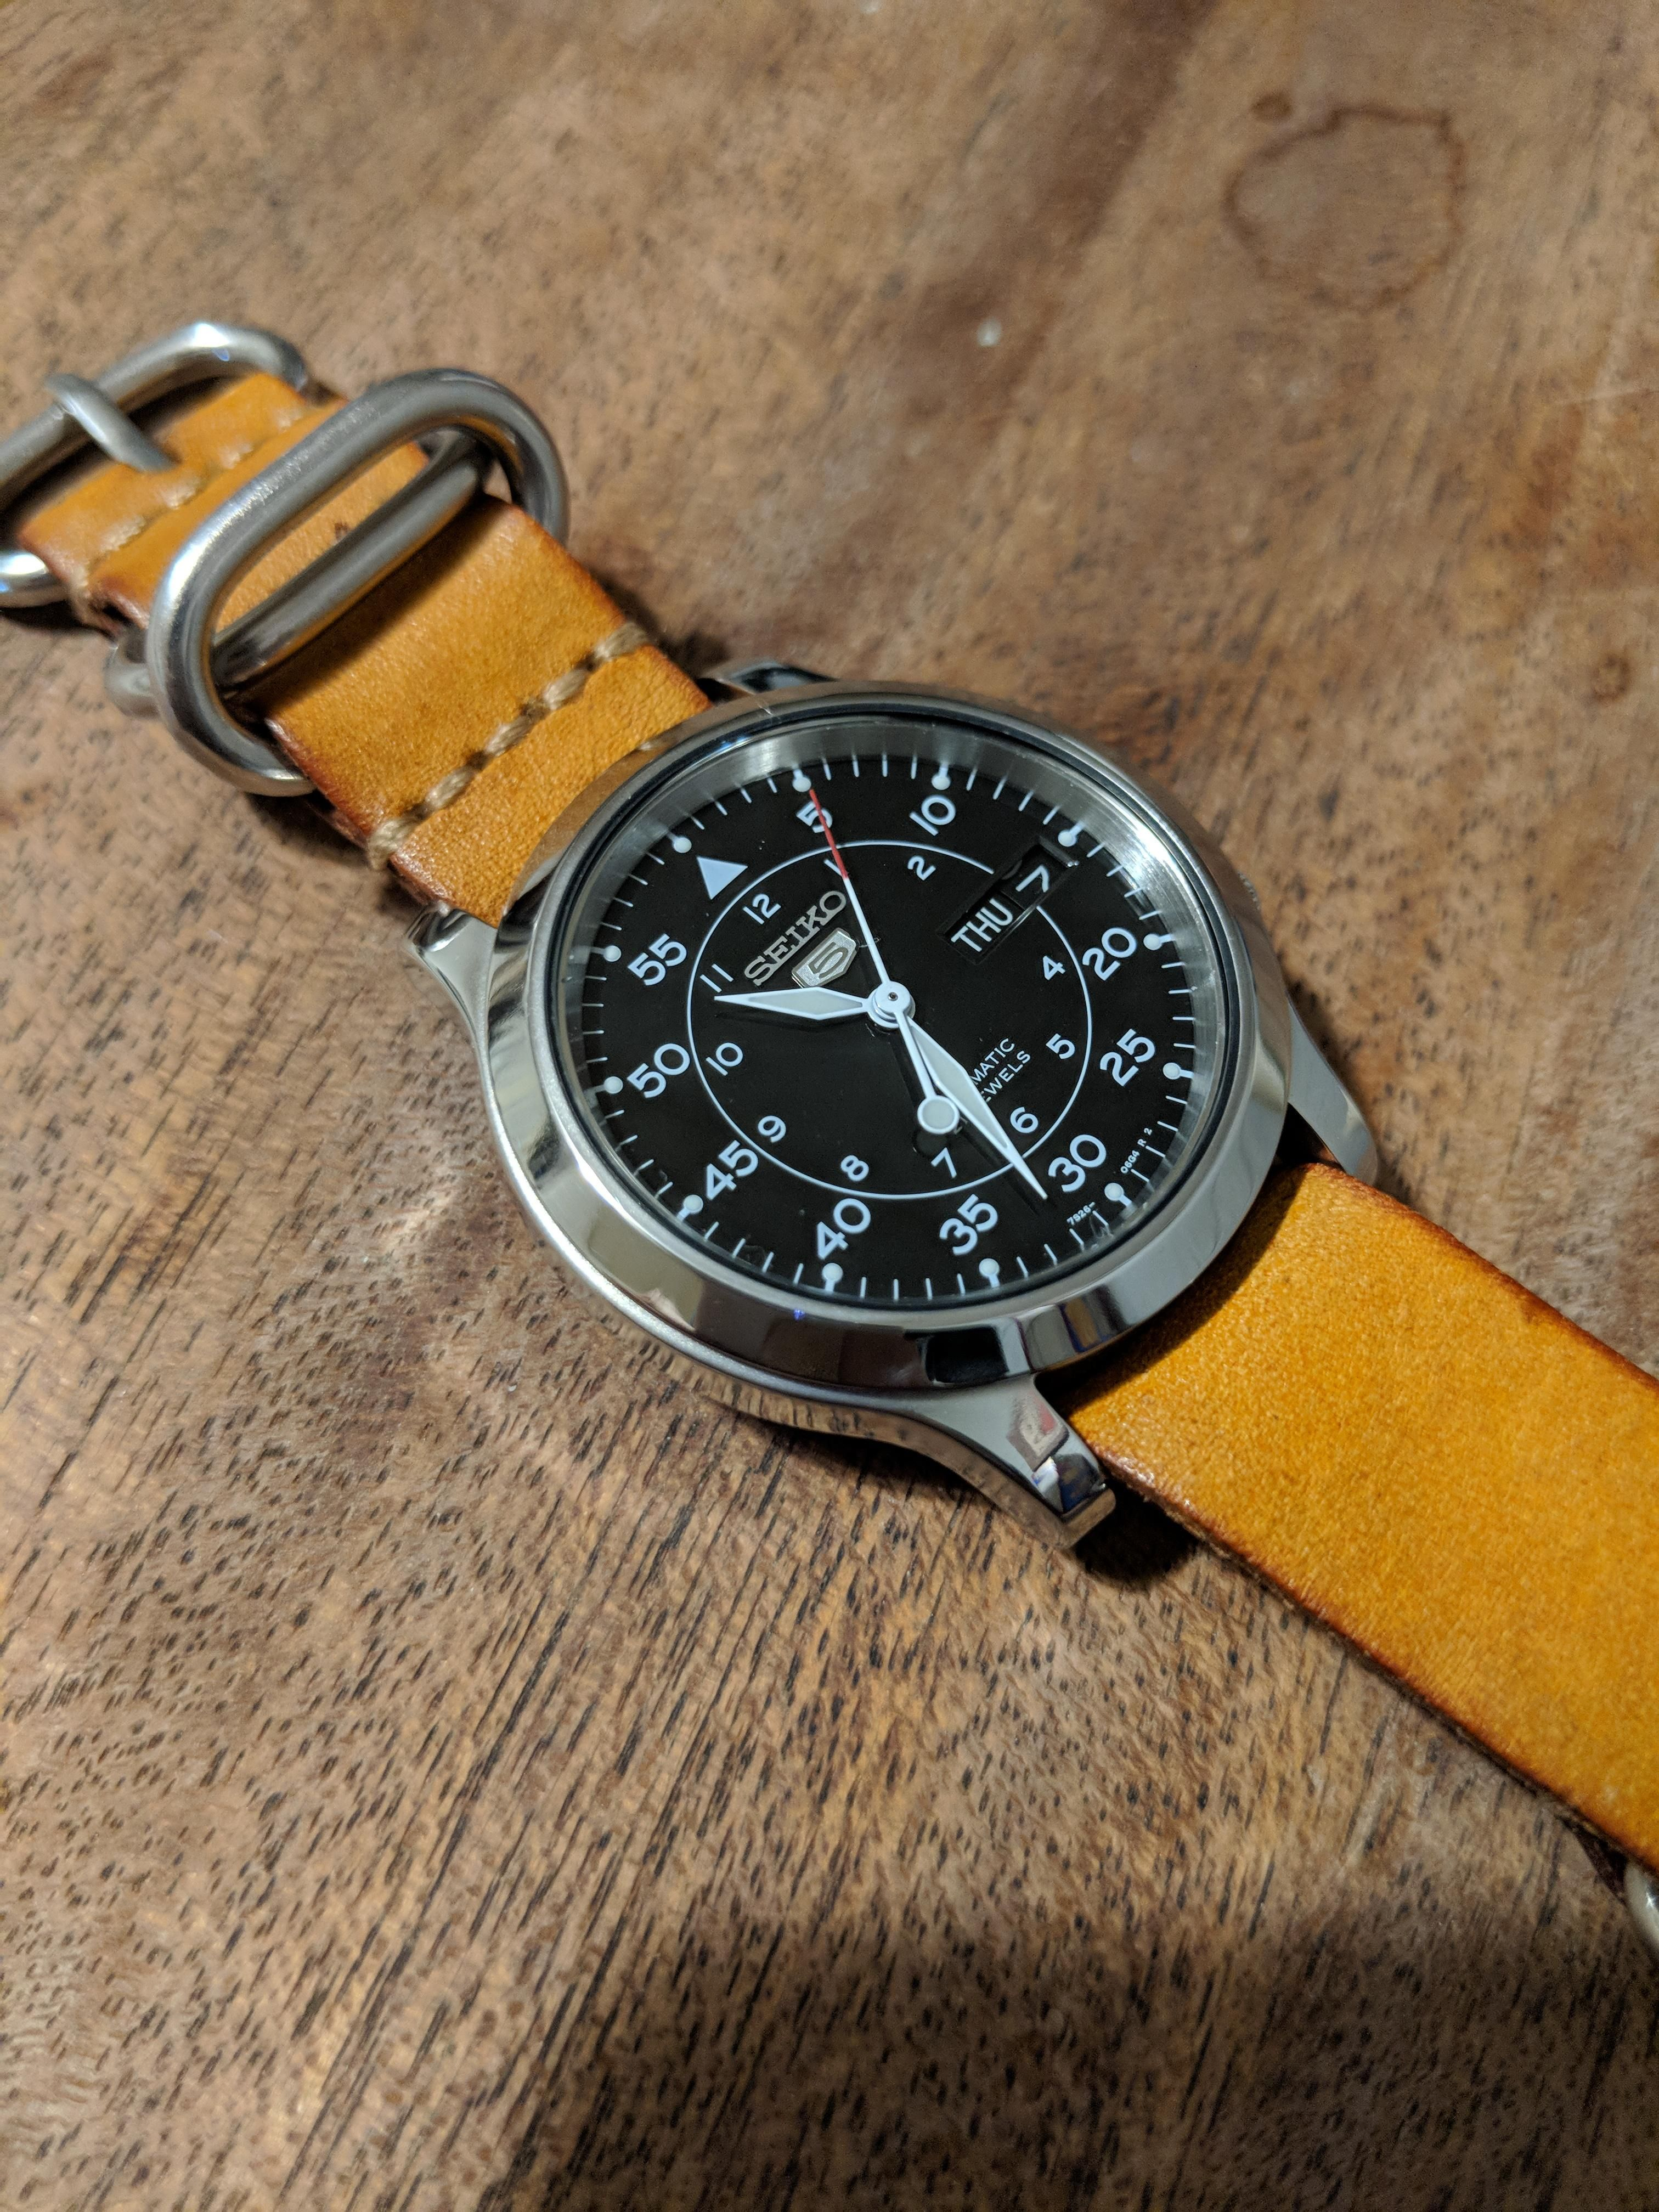 a9a8bc4a6 Seiko] Decided to polish my SNK809 | Watches in 2019 | Seiko watches ...